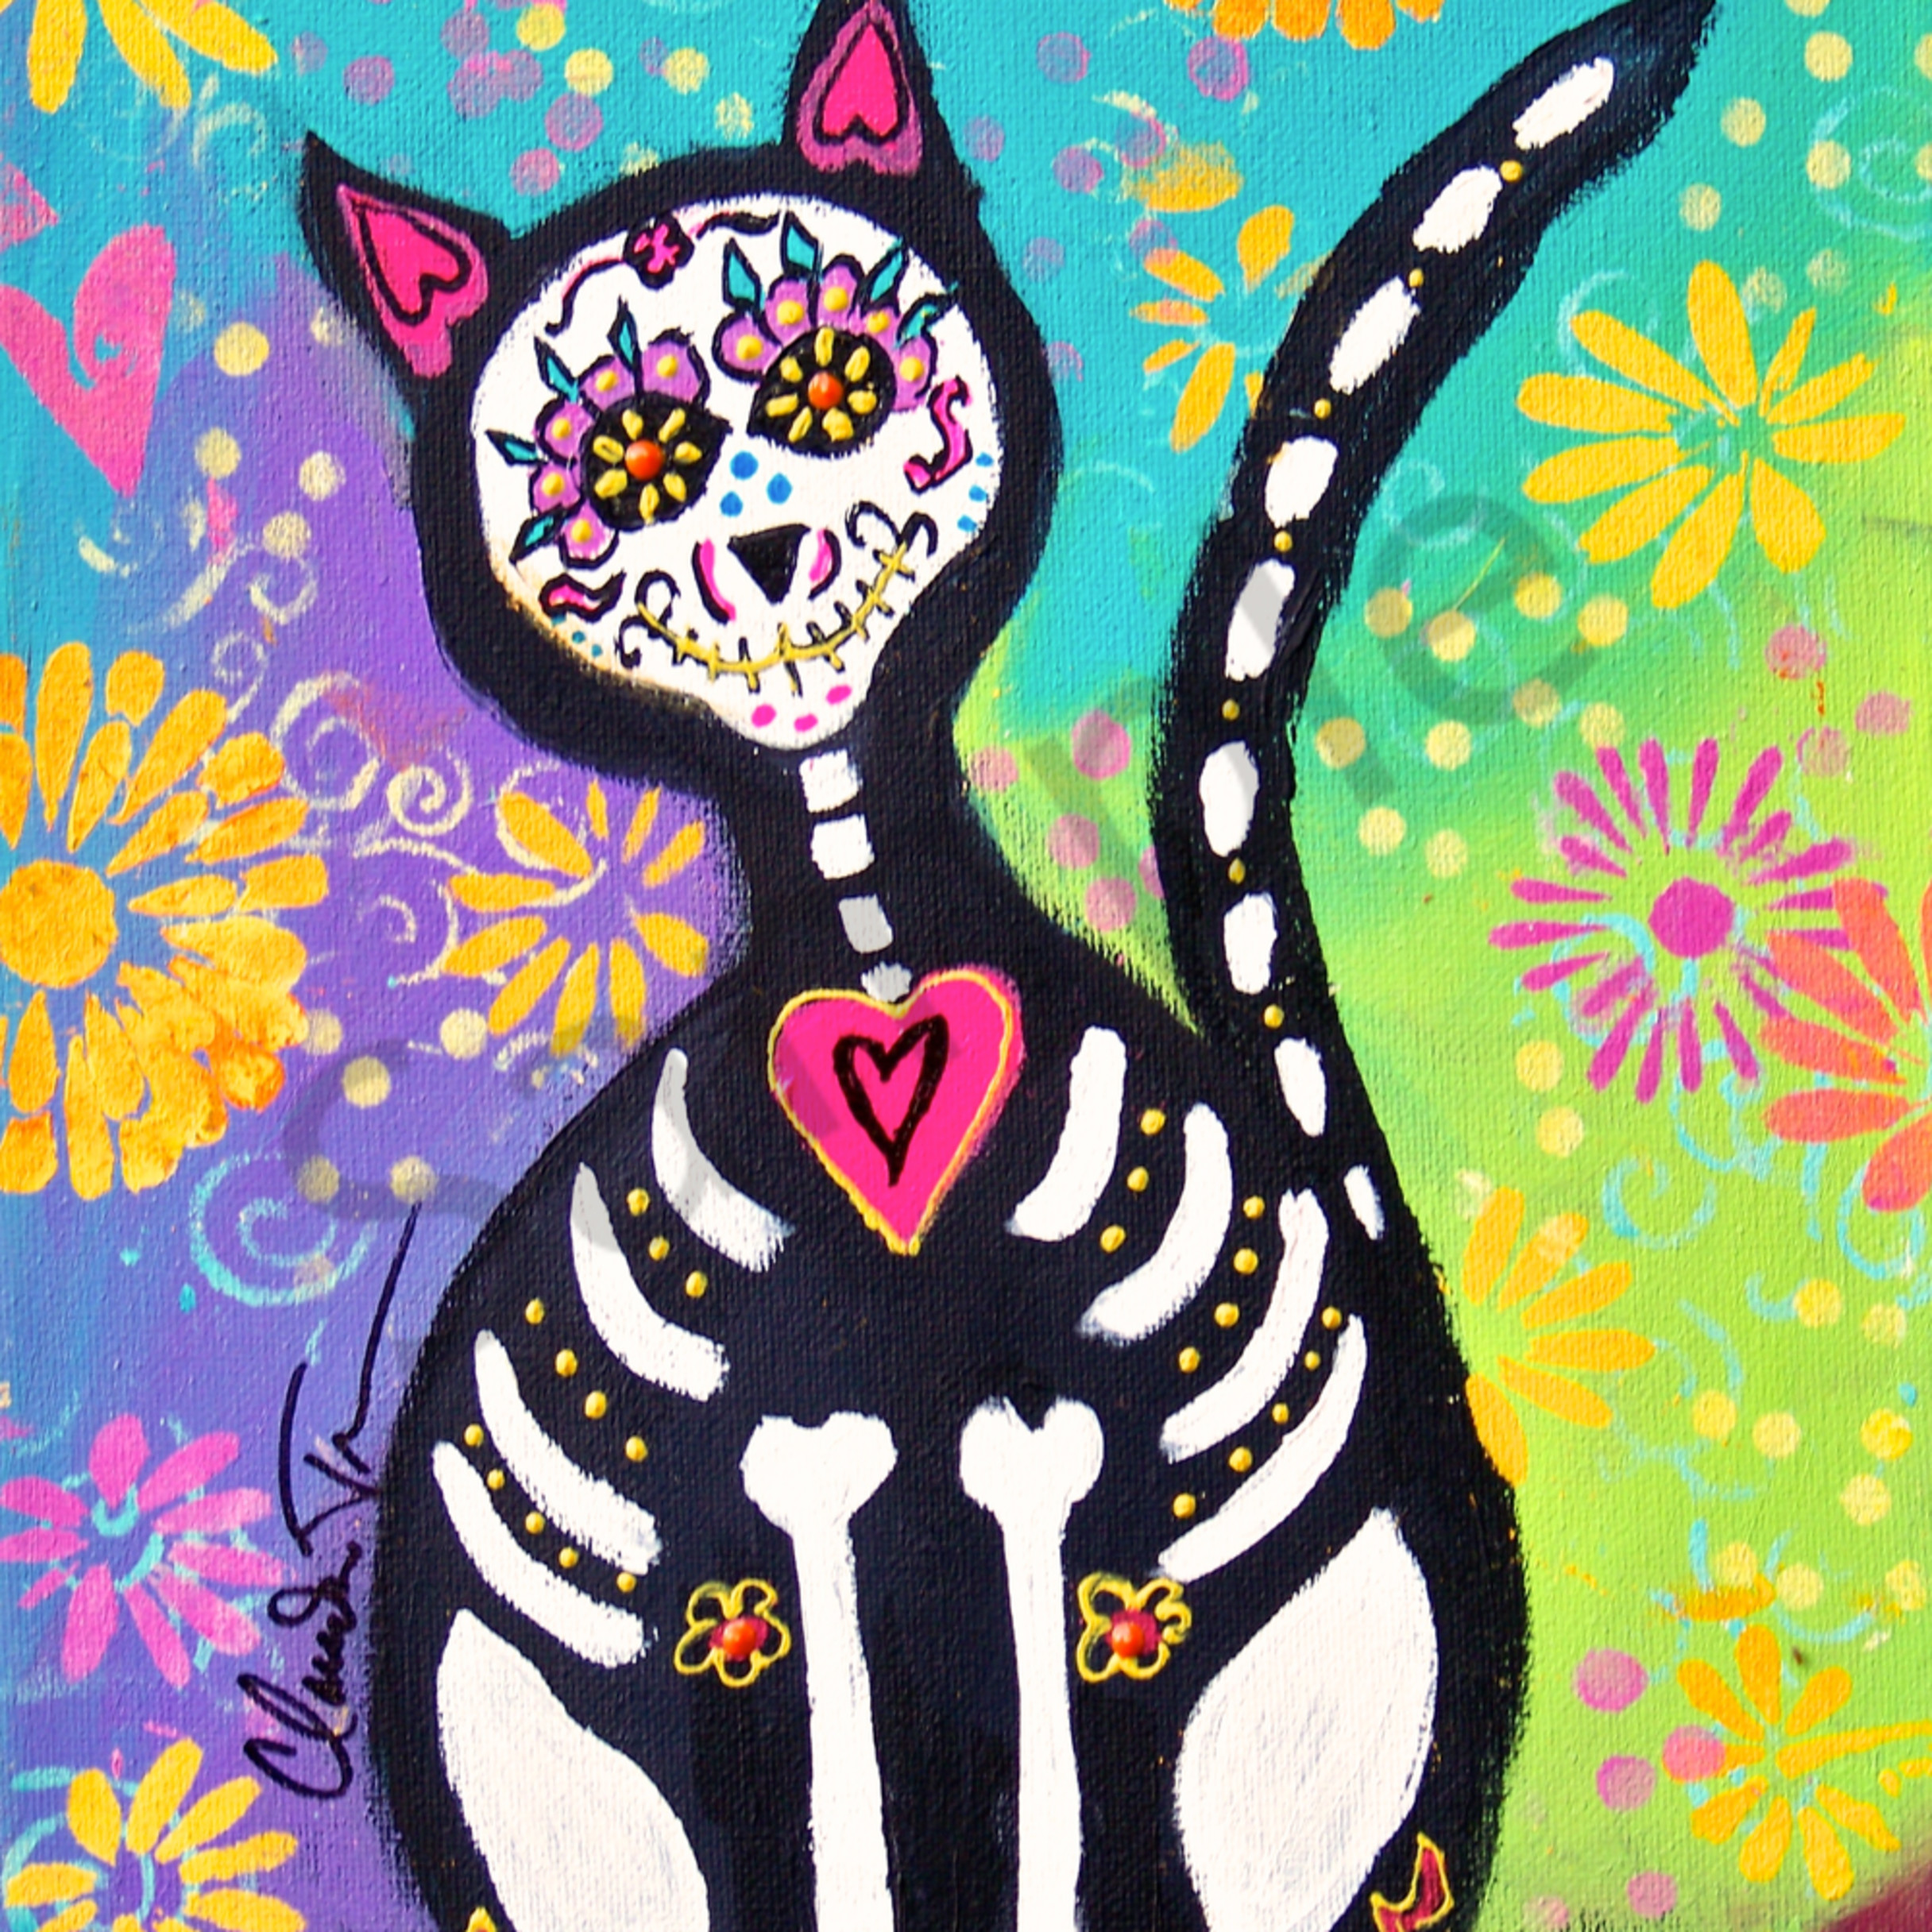 Day of the dead cat 1 luhew6